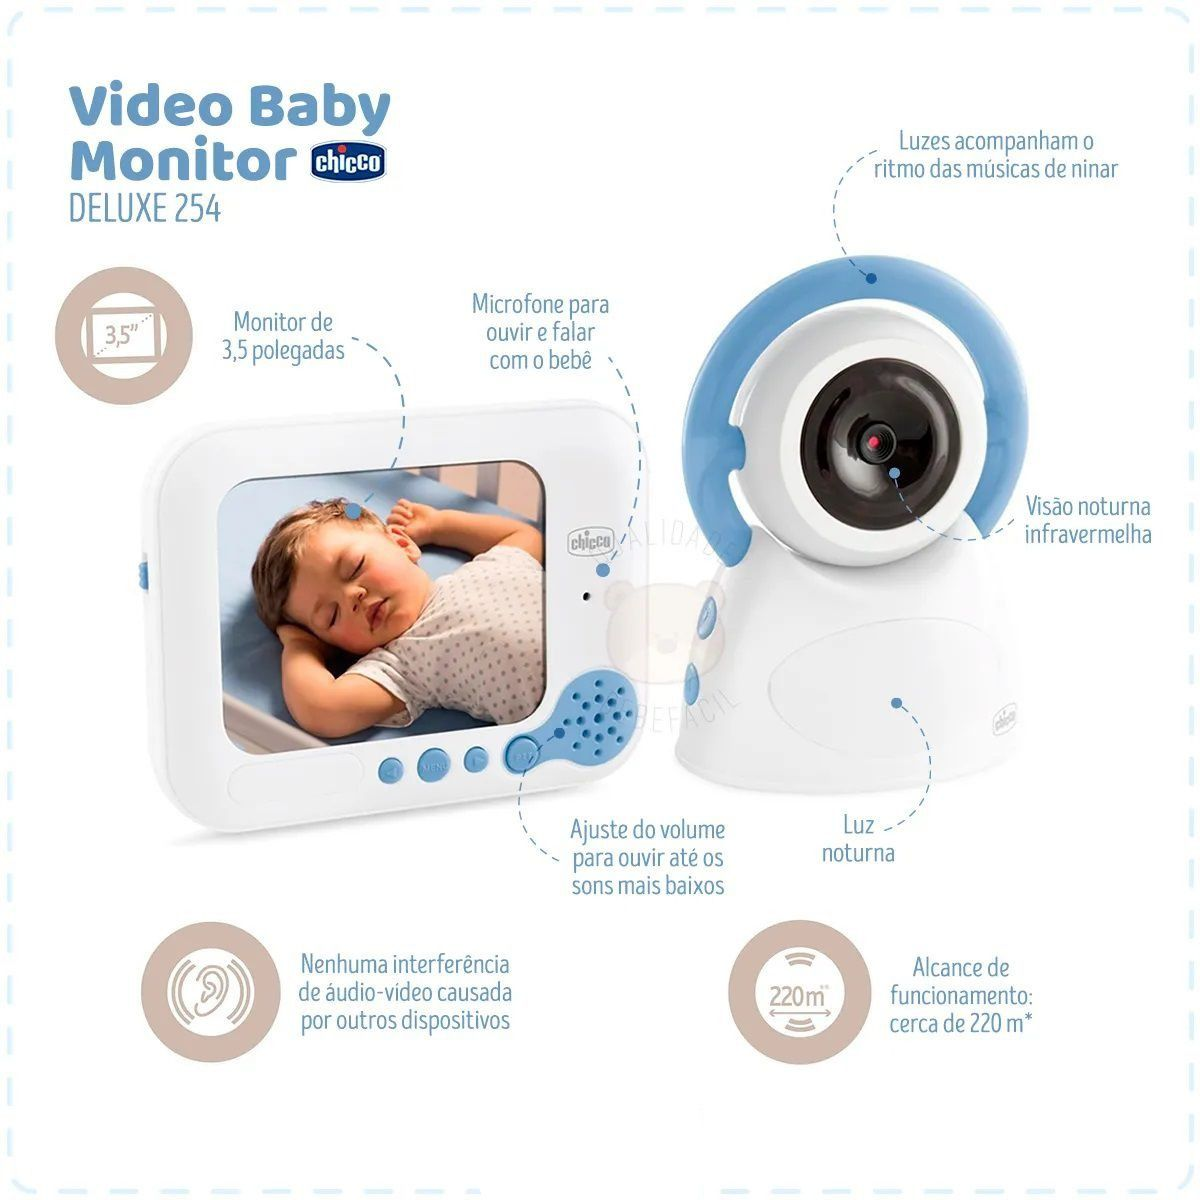 VIDEO BABY INTERCOMUNICADOR COM MONITOR DELUXE - CHICCO